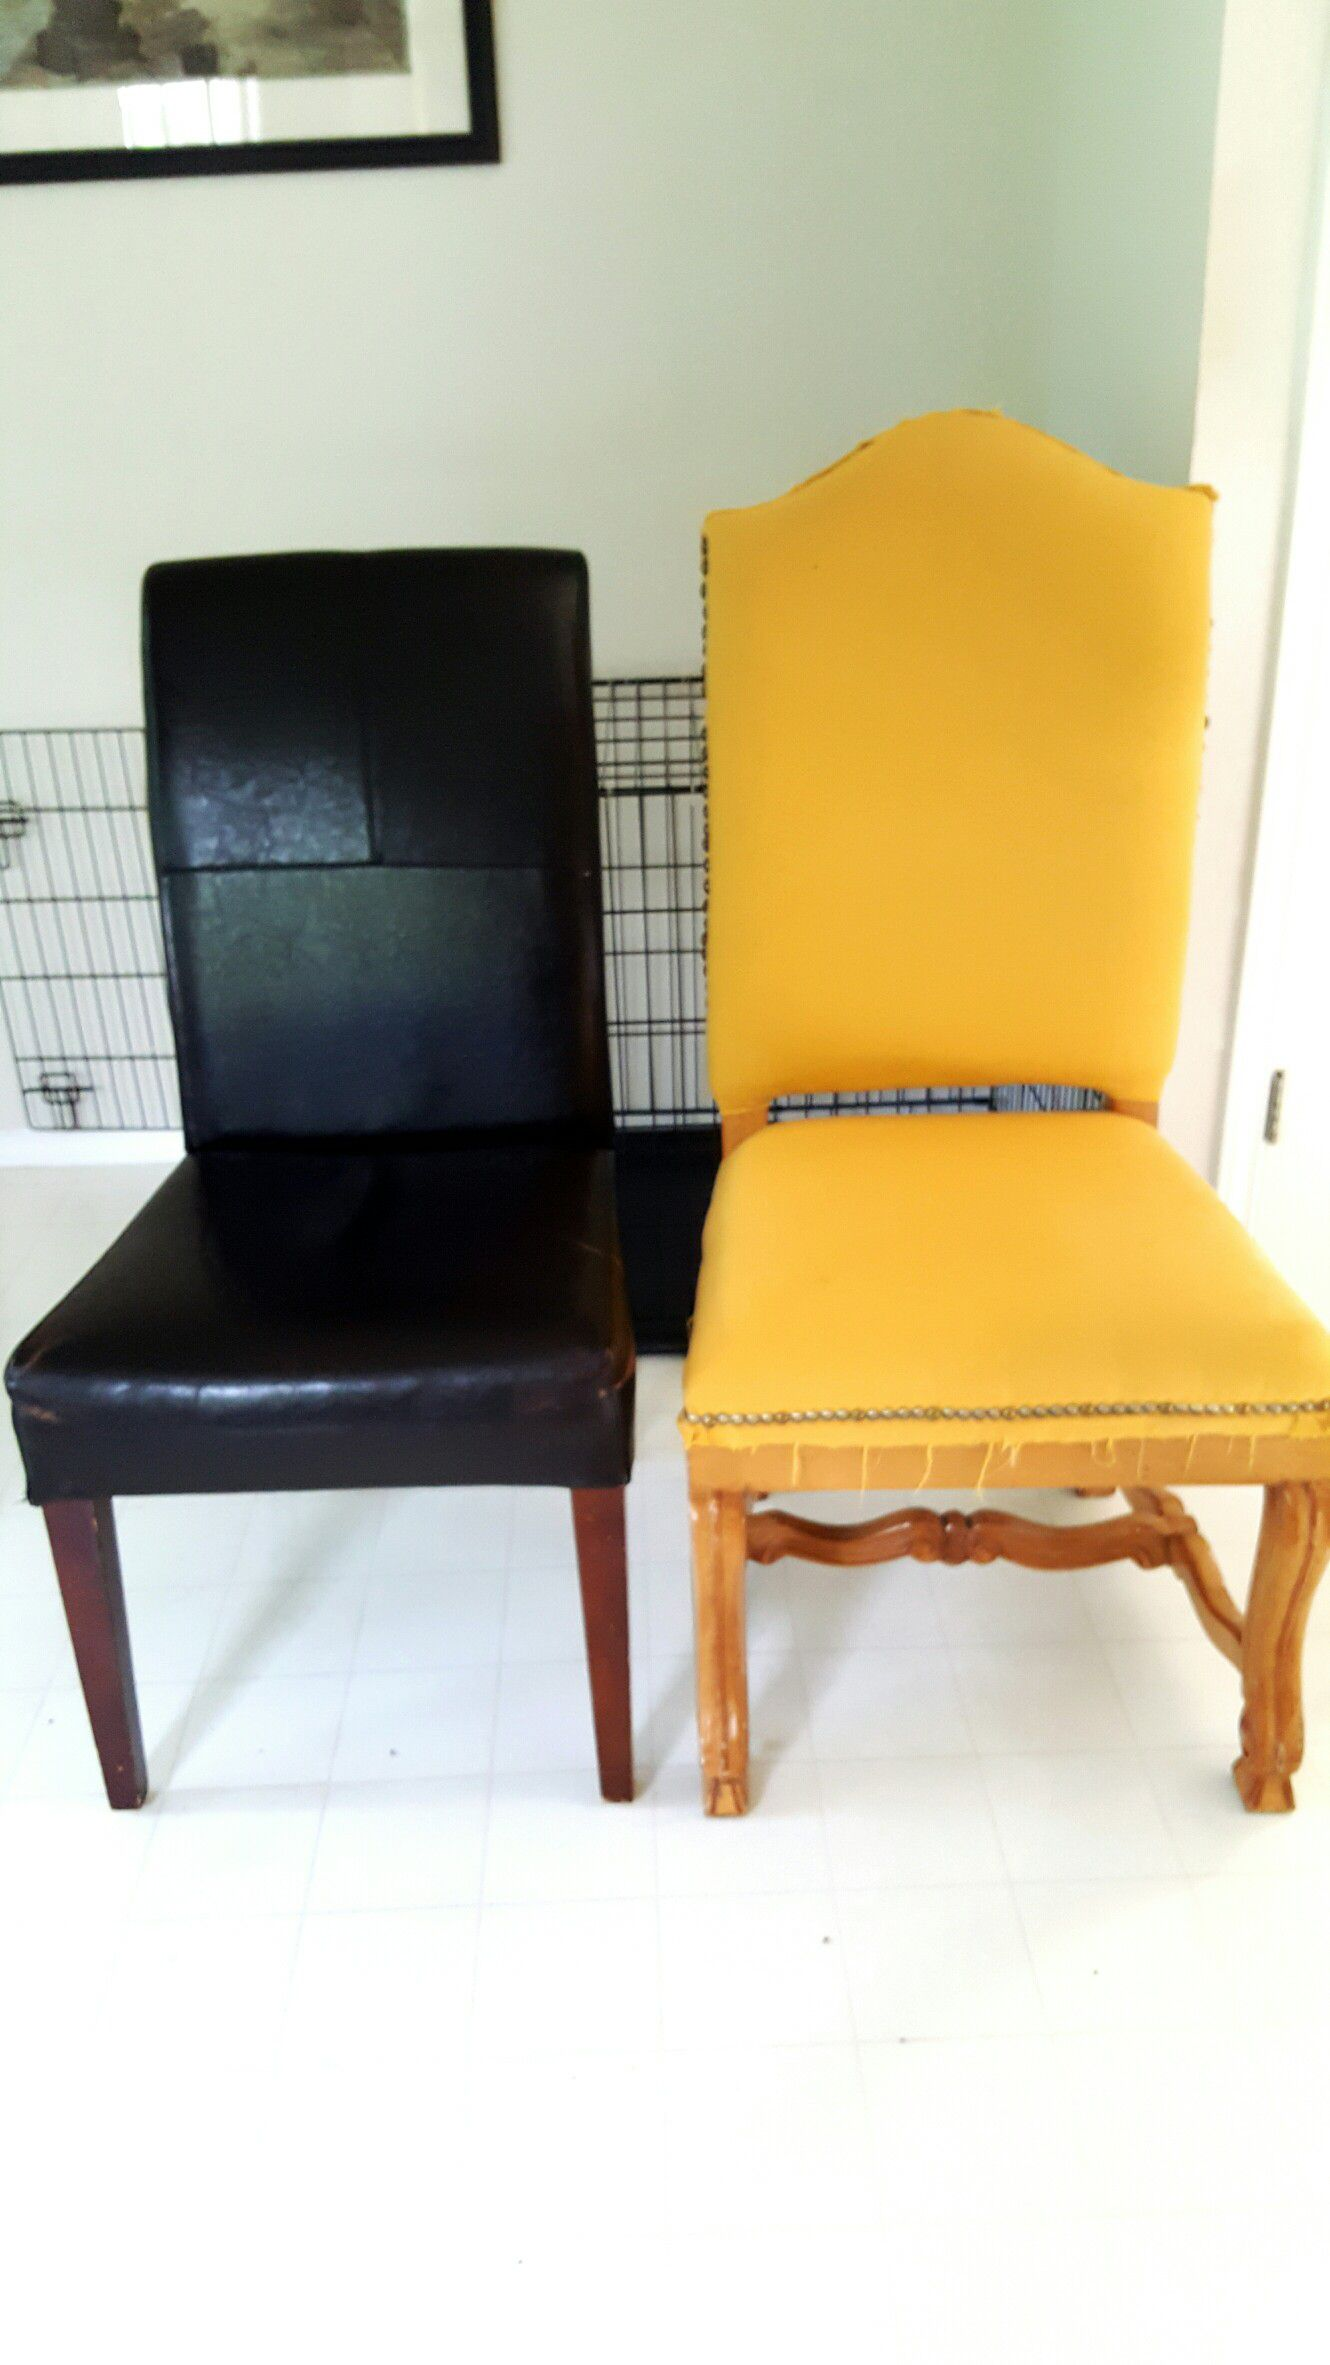 Antique style upholstered chair